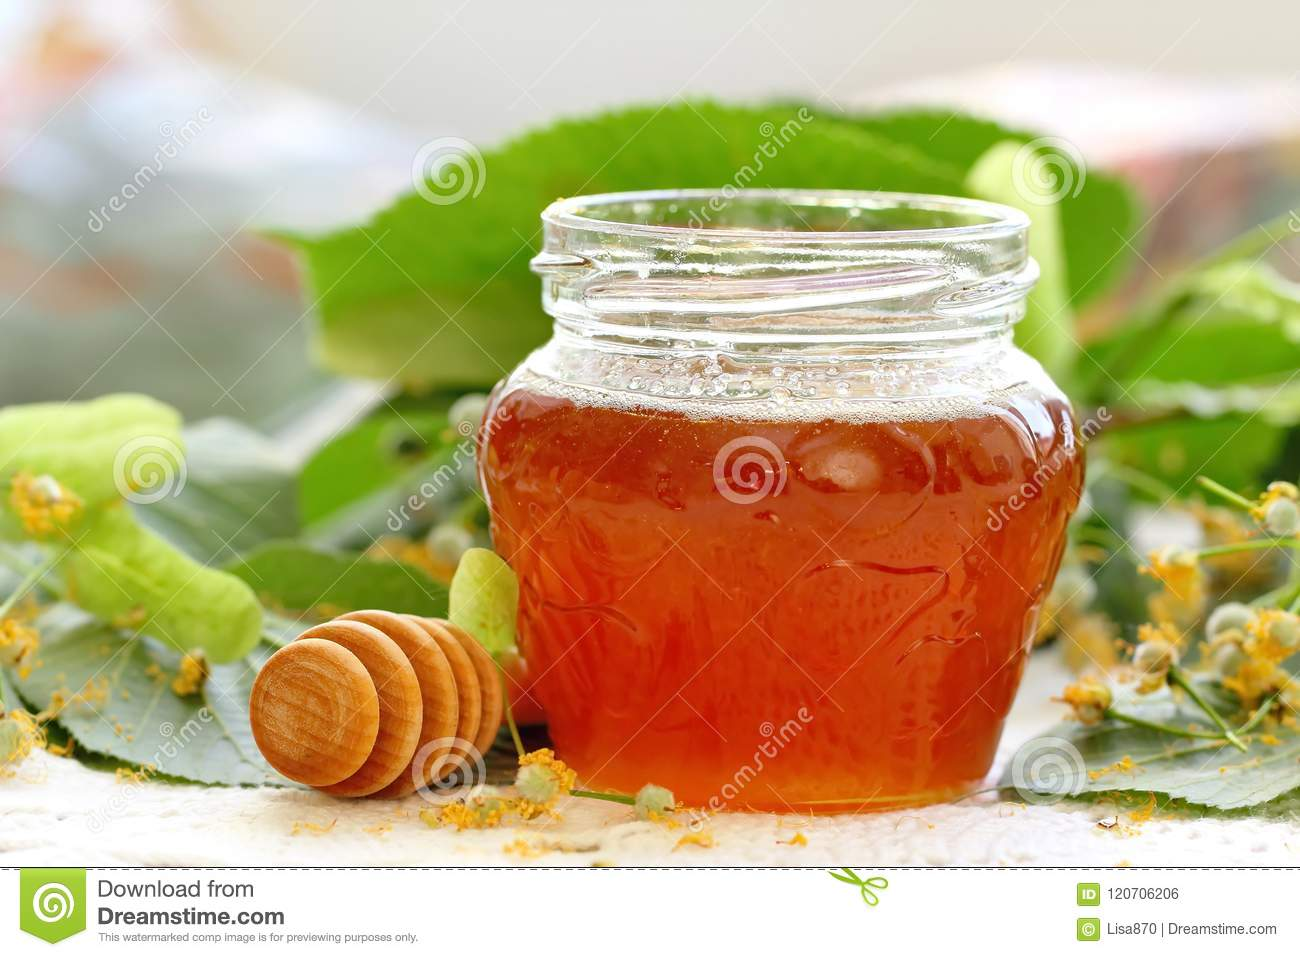 Linden honey in glass jar